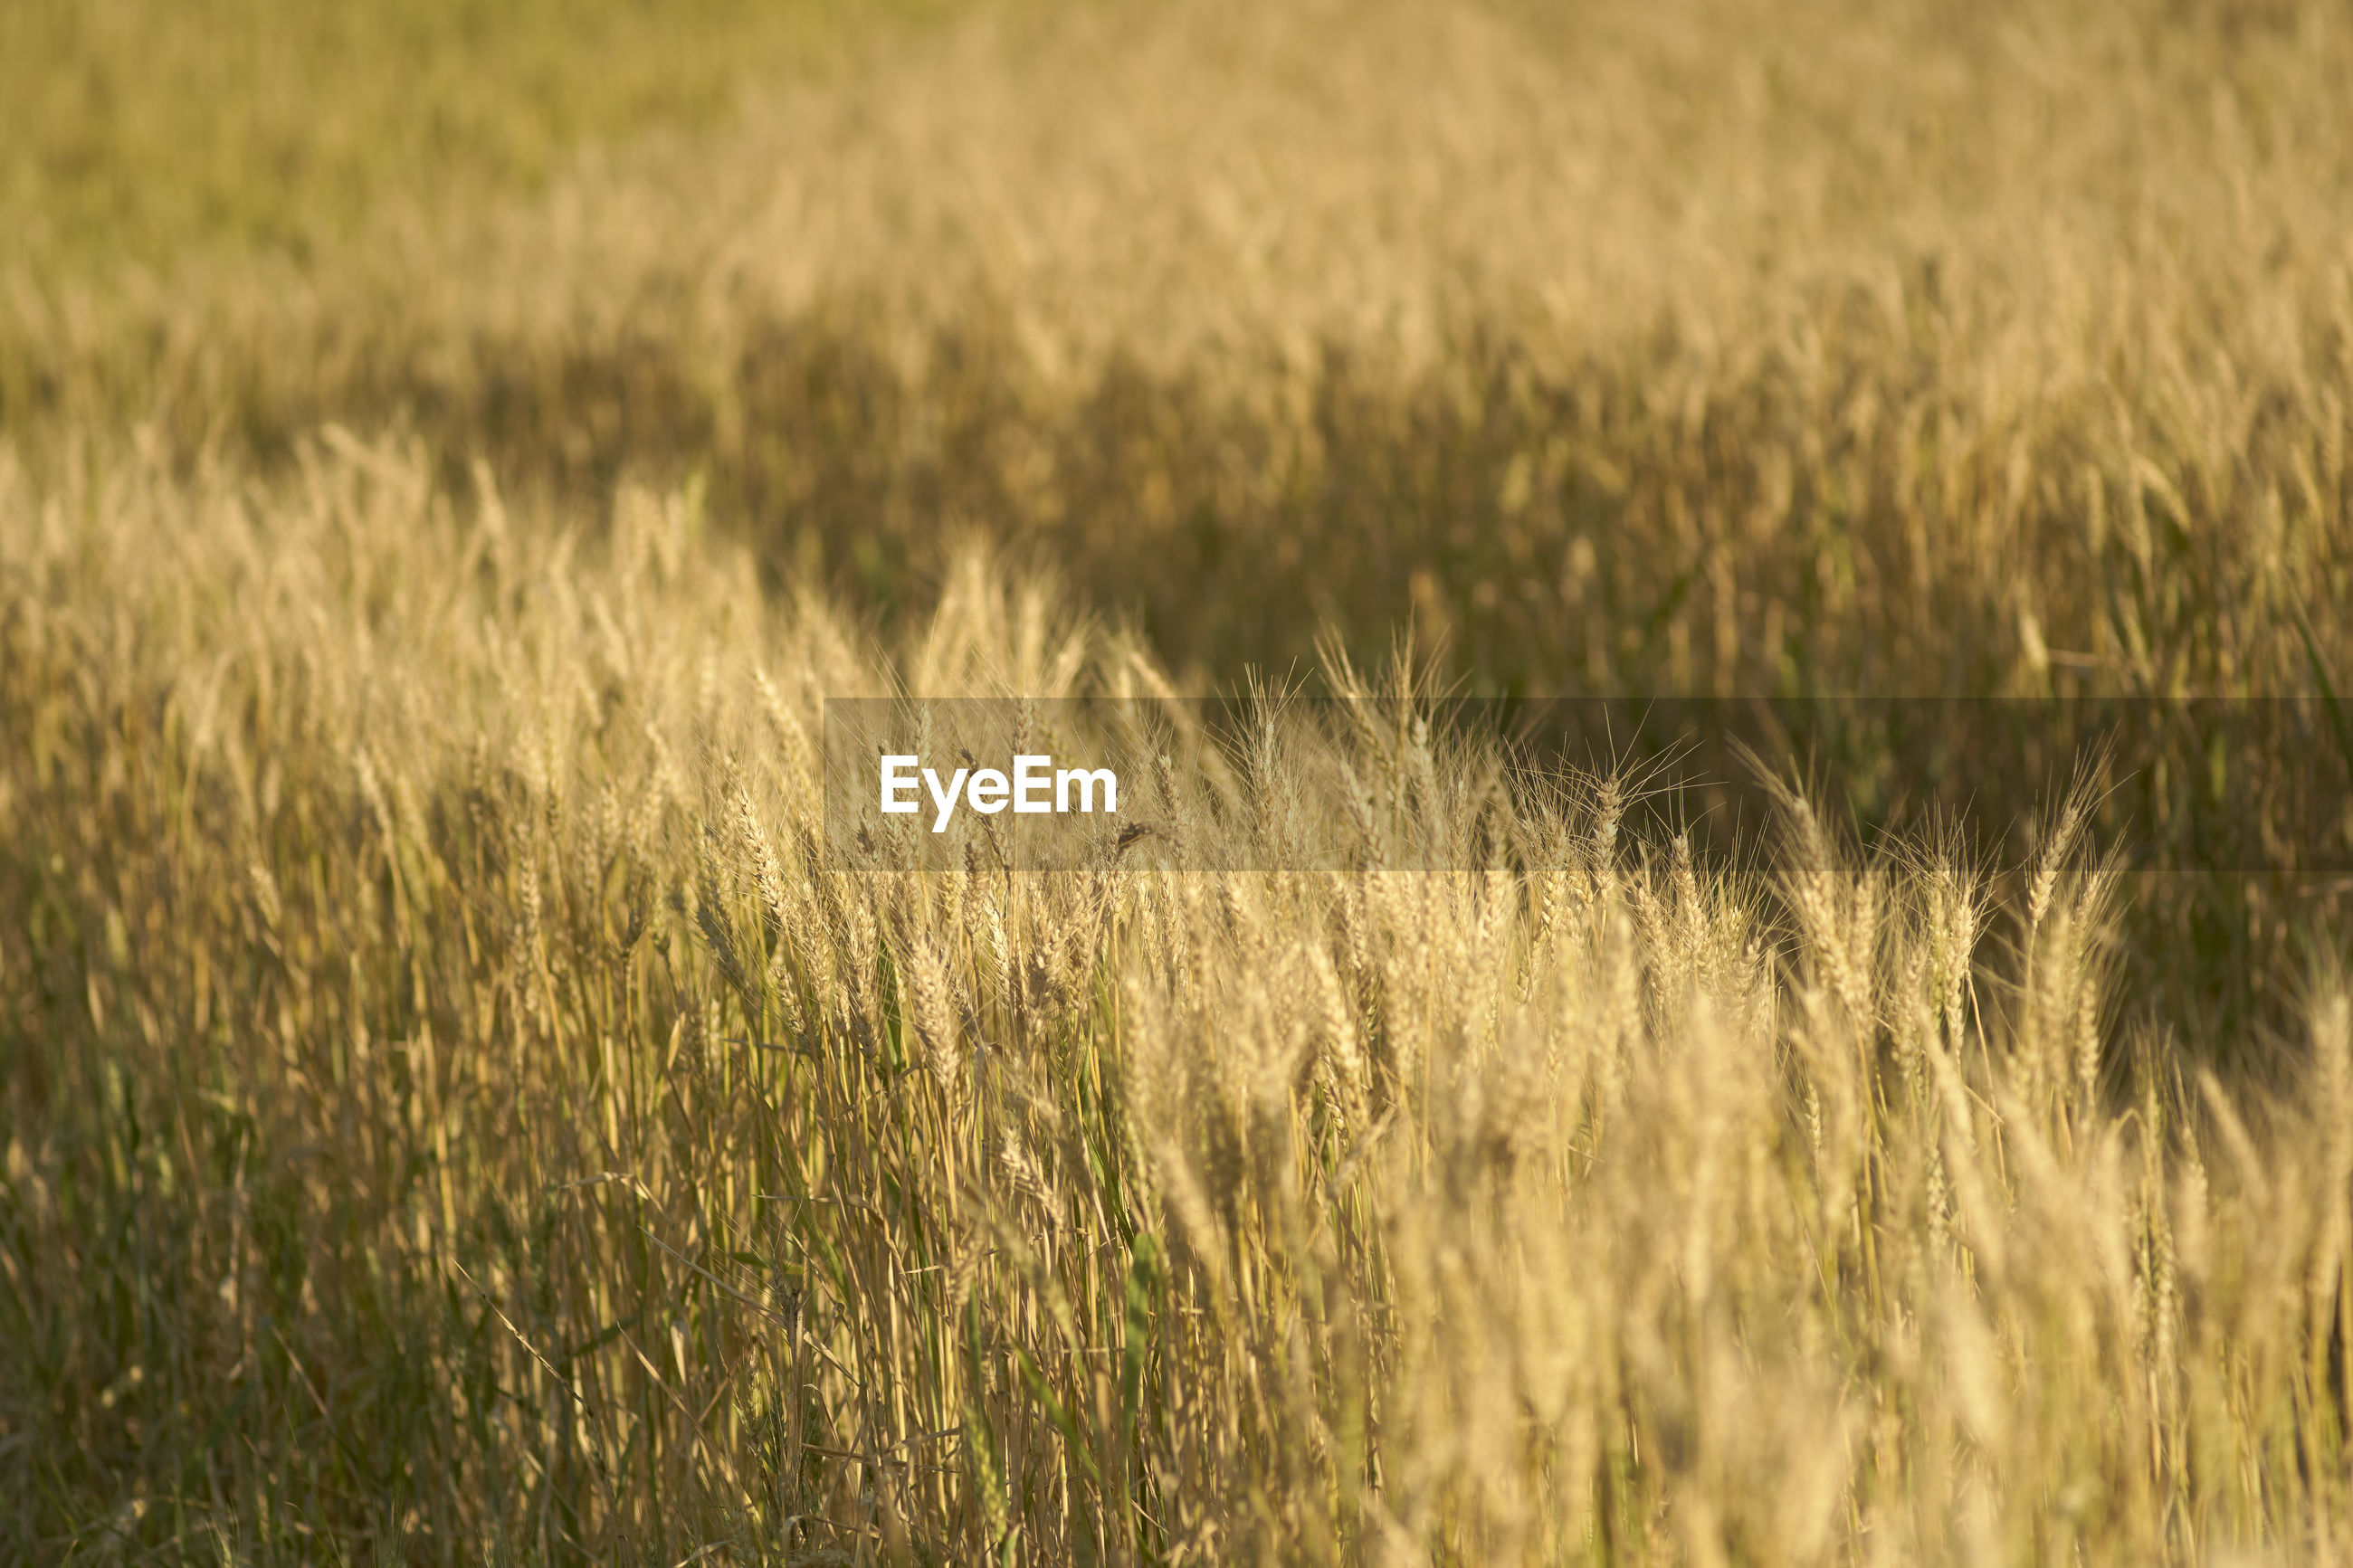 VIEW OF WHEAT FIELD